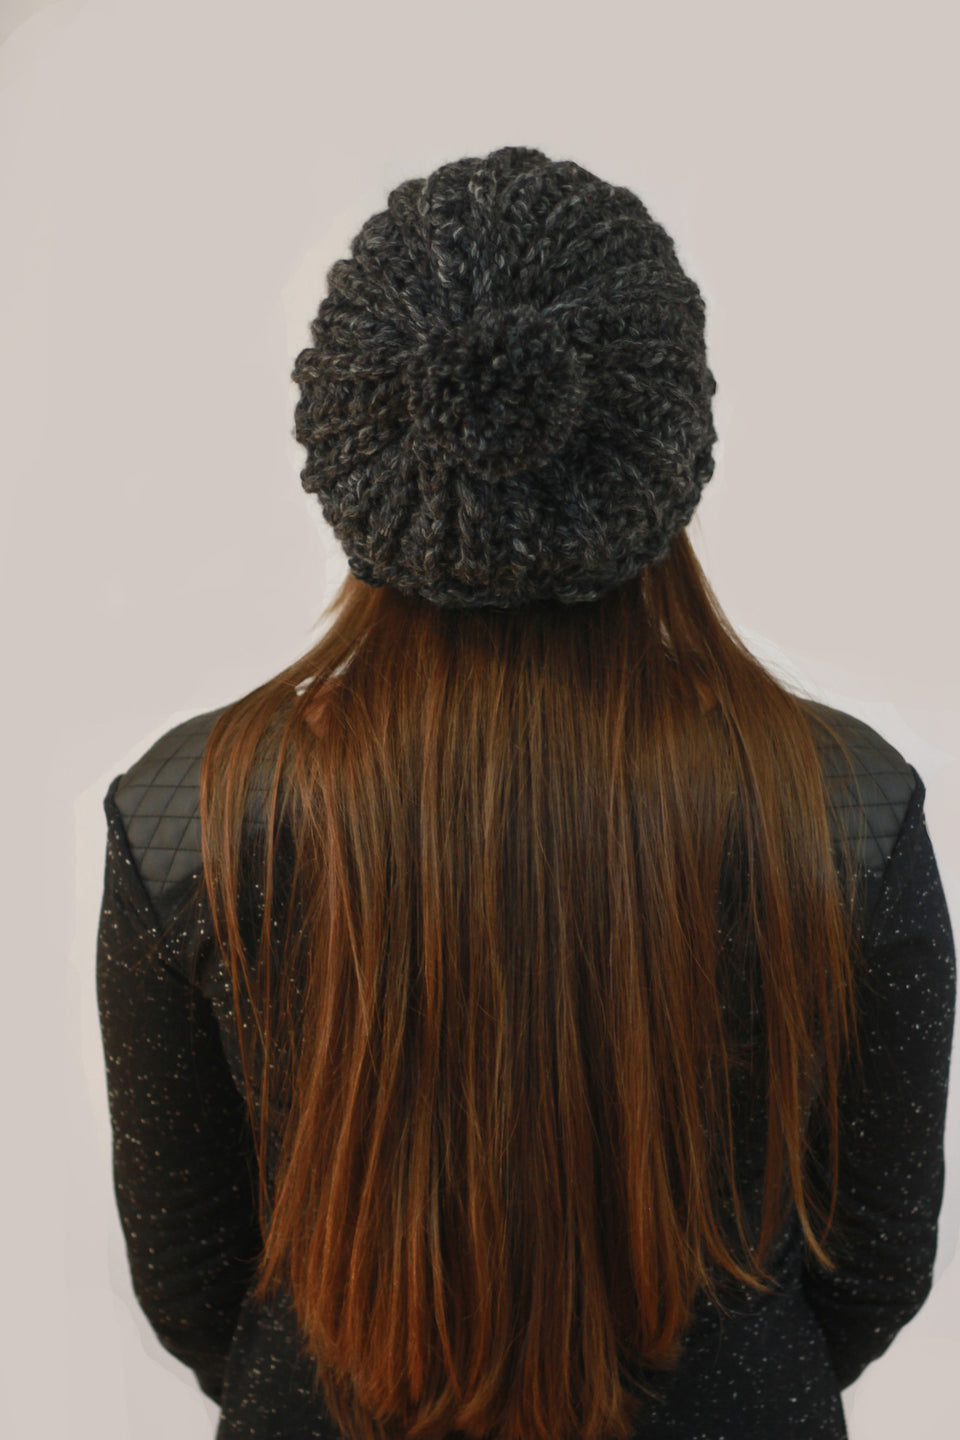 Very warm comfortable wool winter hat Charcoal/Black Slouchy Pom Pom Beanie Handmade Crochet Montreal Miyuki Crochet